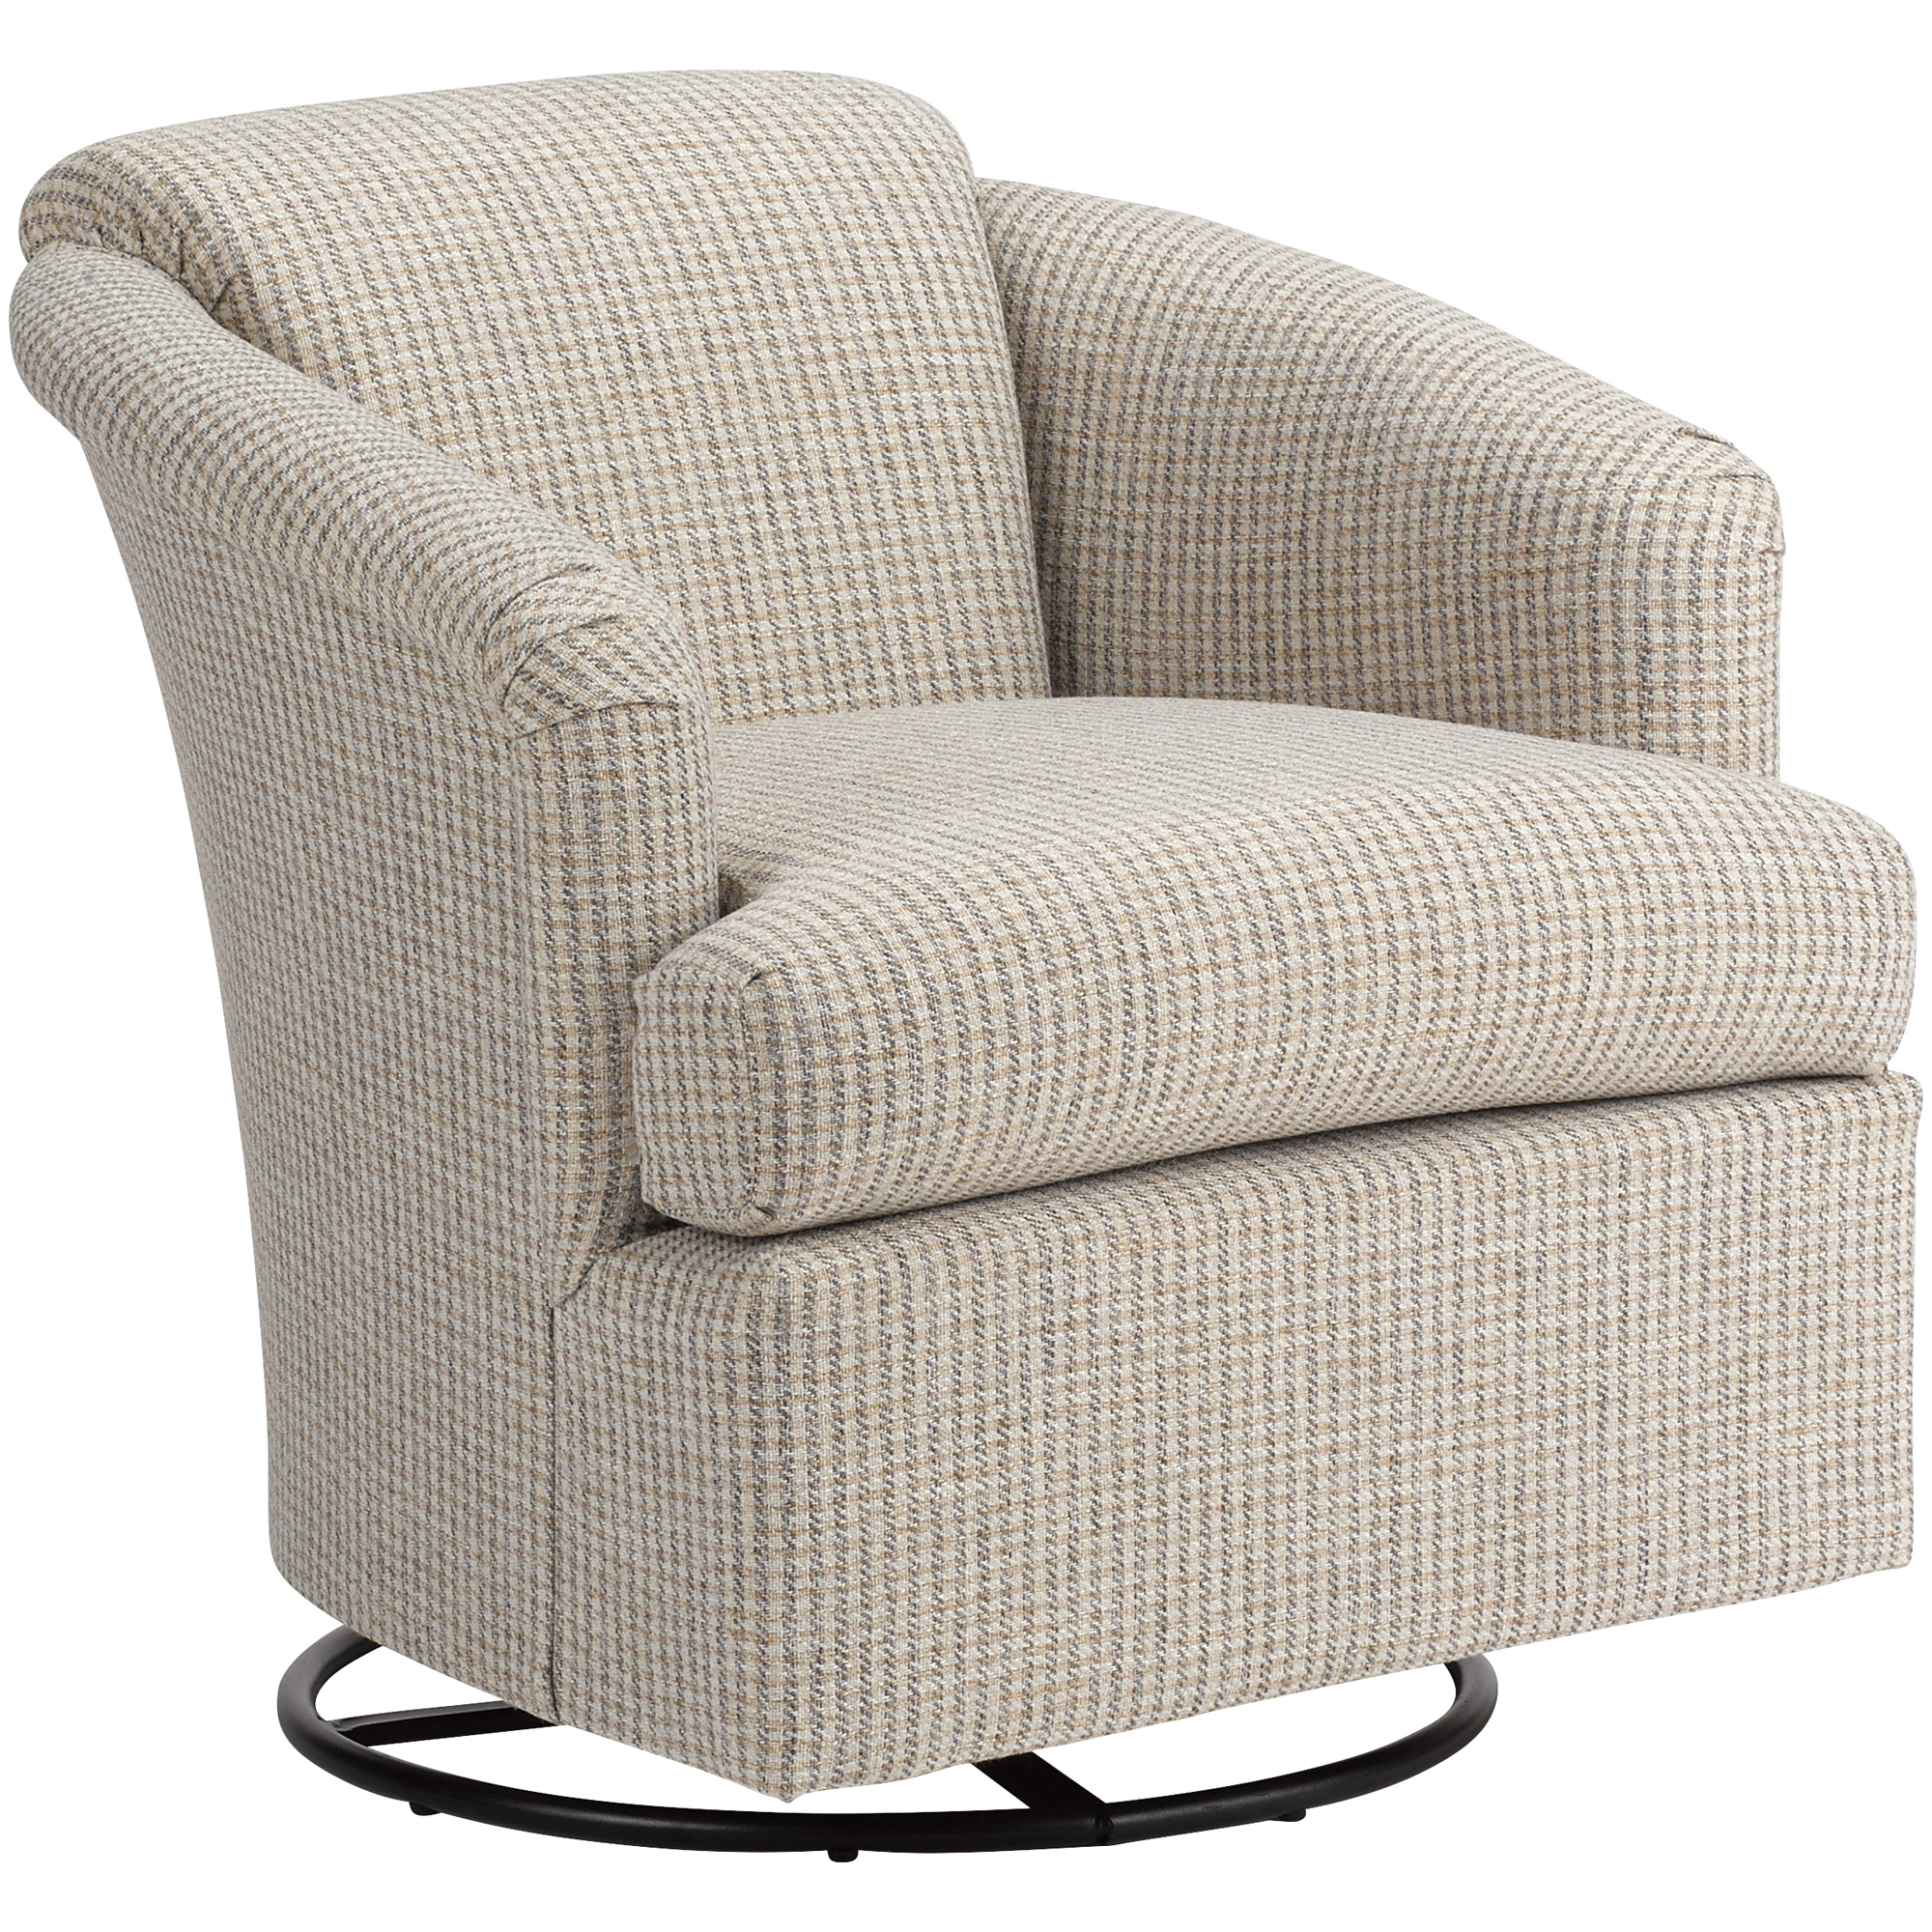 Best Home Furnishings | Cass Graphite Swivel Glider Accent Chair